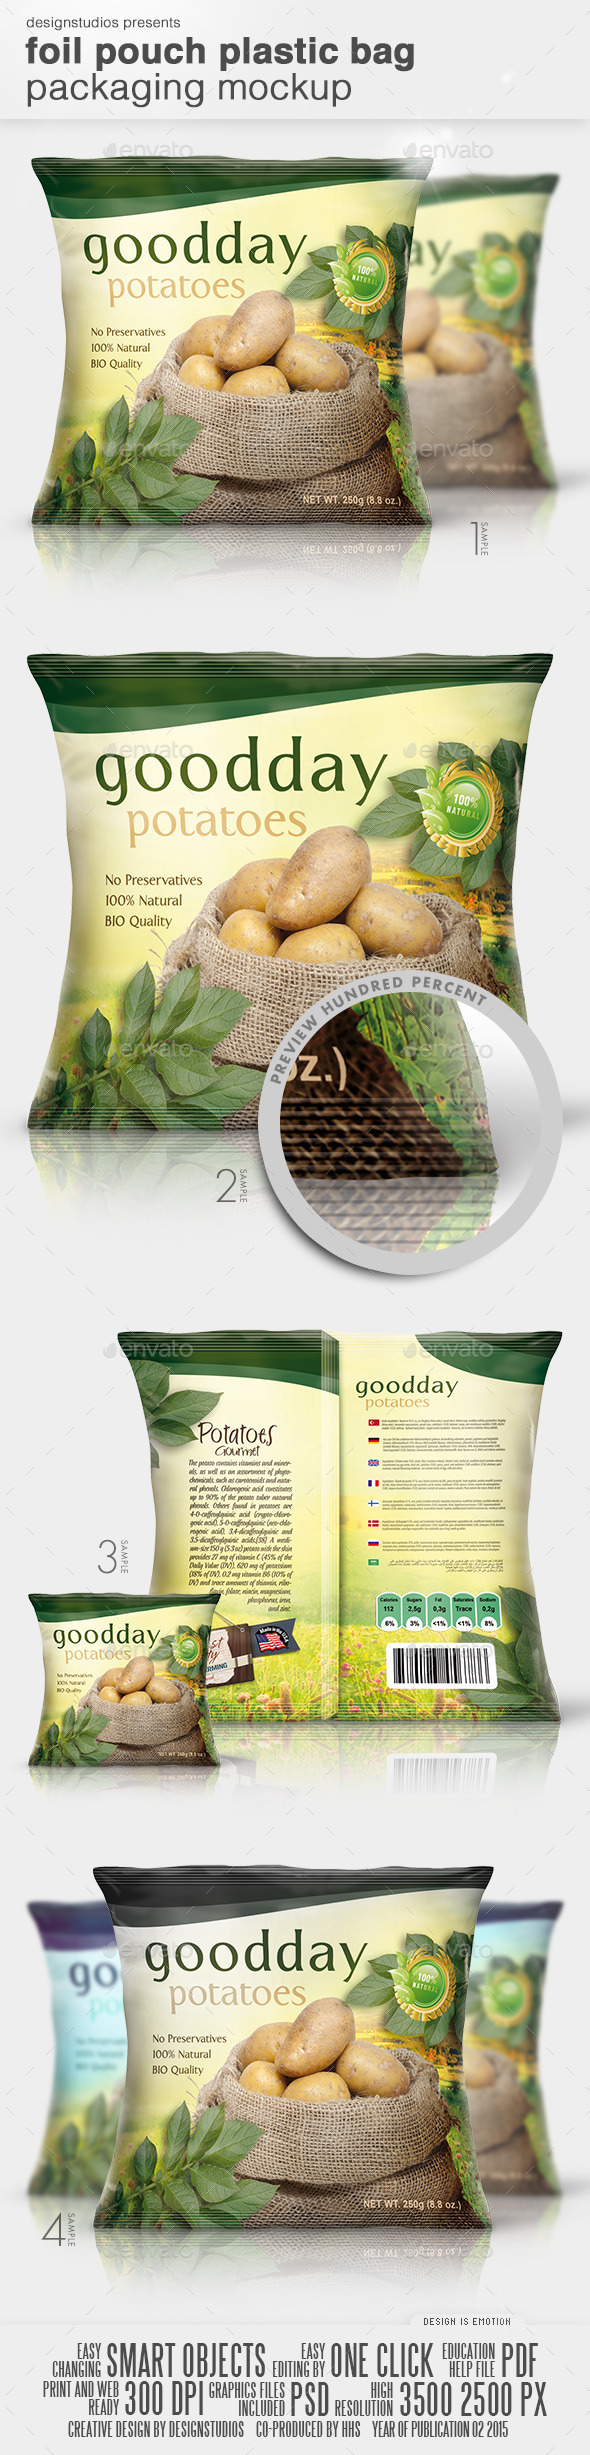 Foil Pouch Plastic Bag Packaging Mock-Up - Product Mock-Ups Graphics